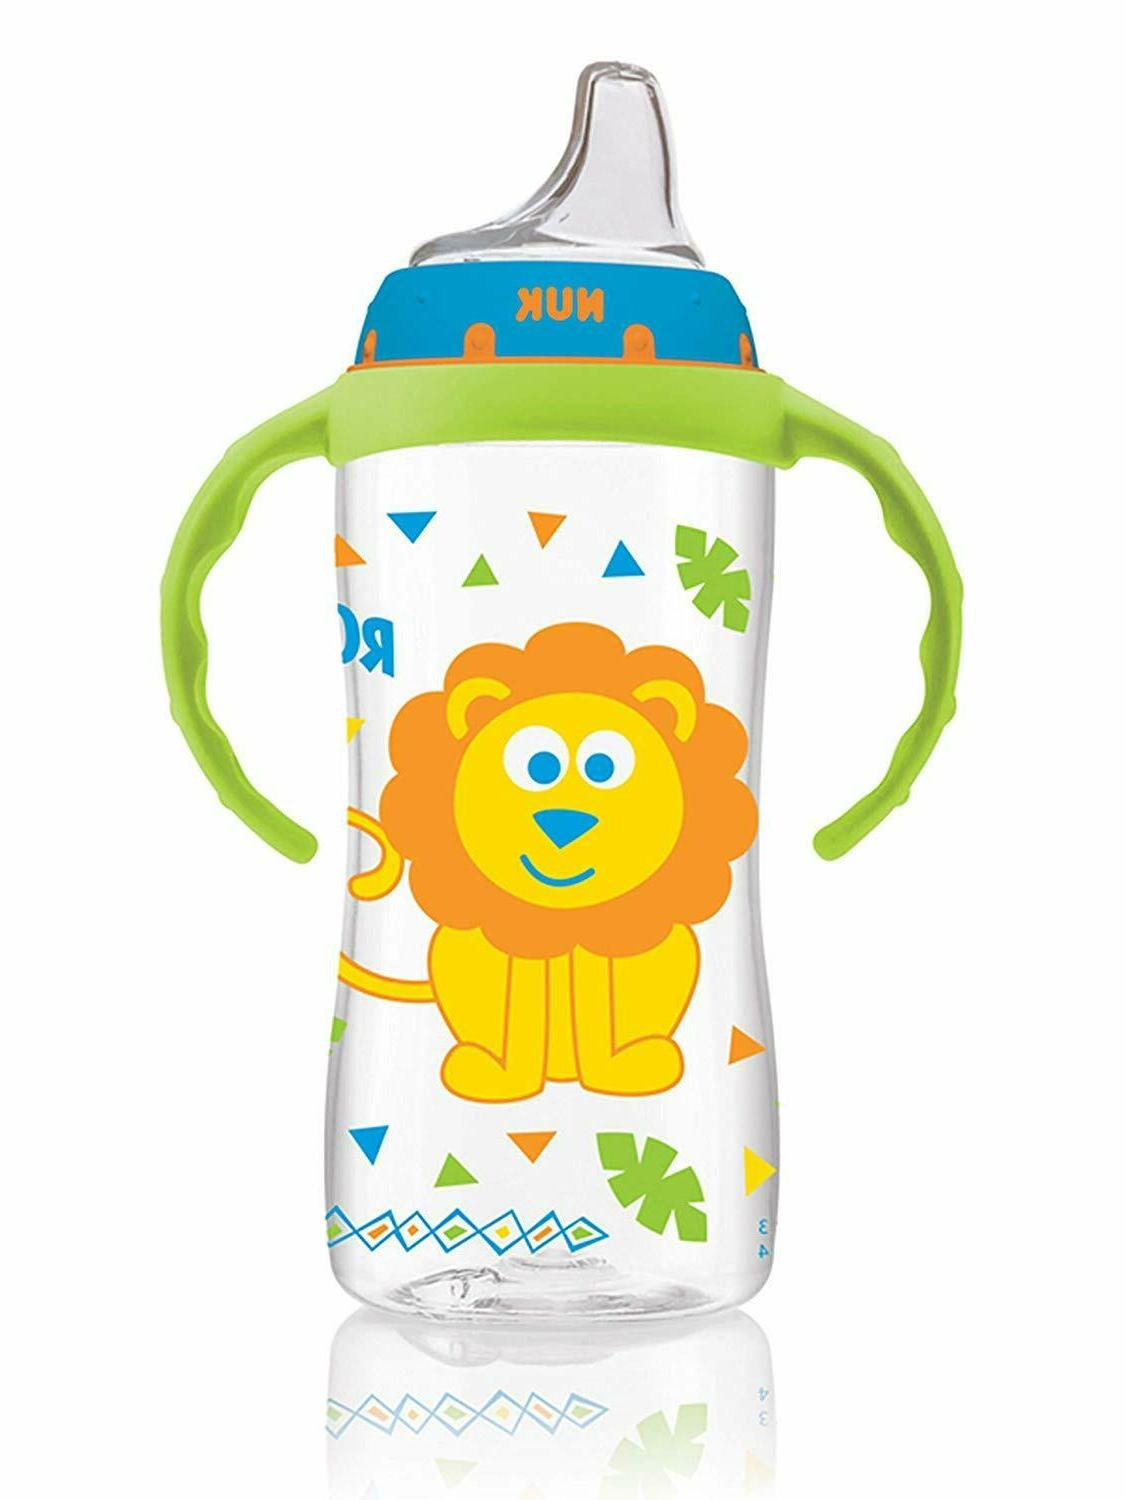 NUK Large Cup,Green Tractor Designs,10 oz 1pk